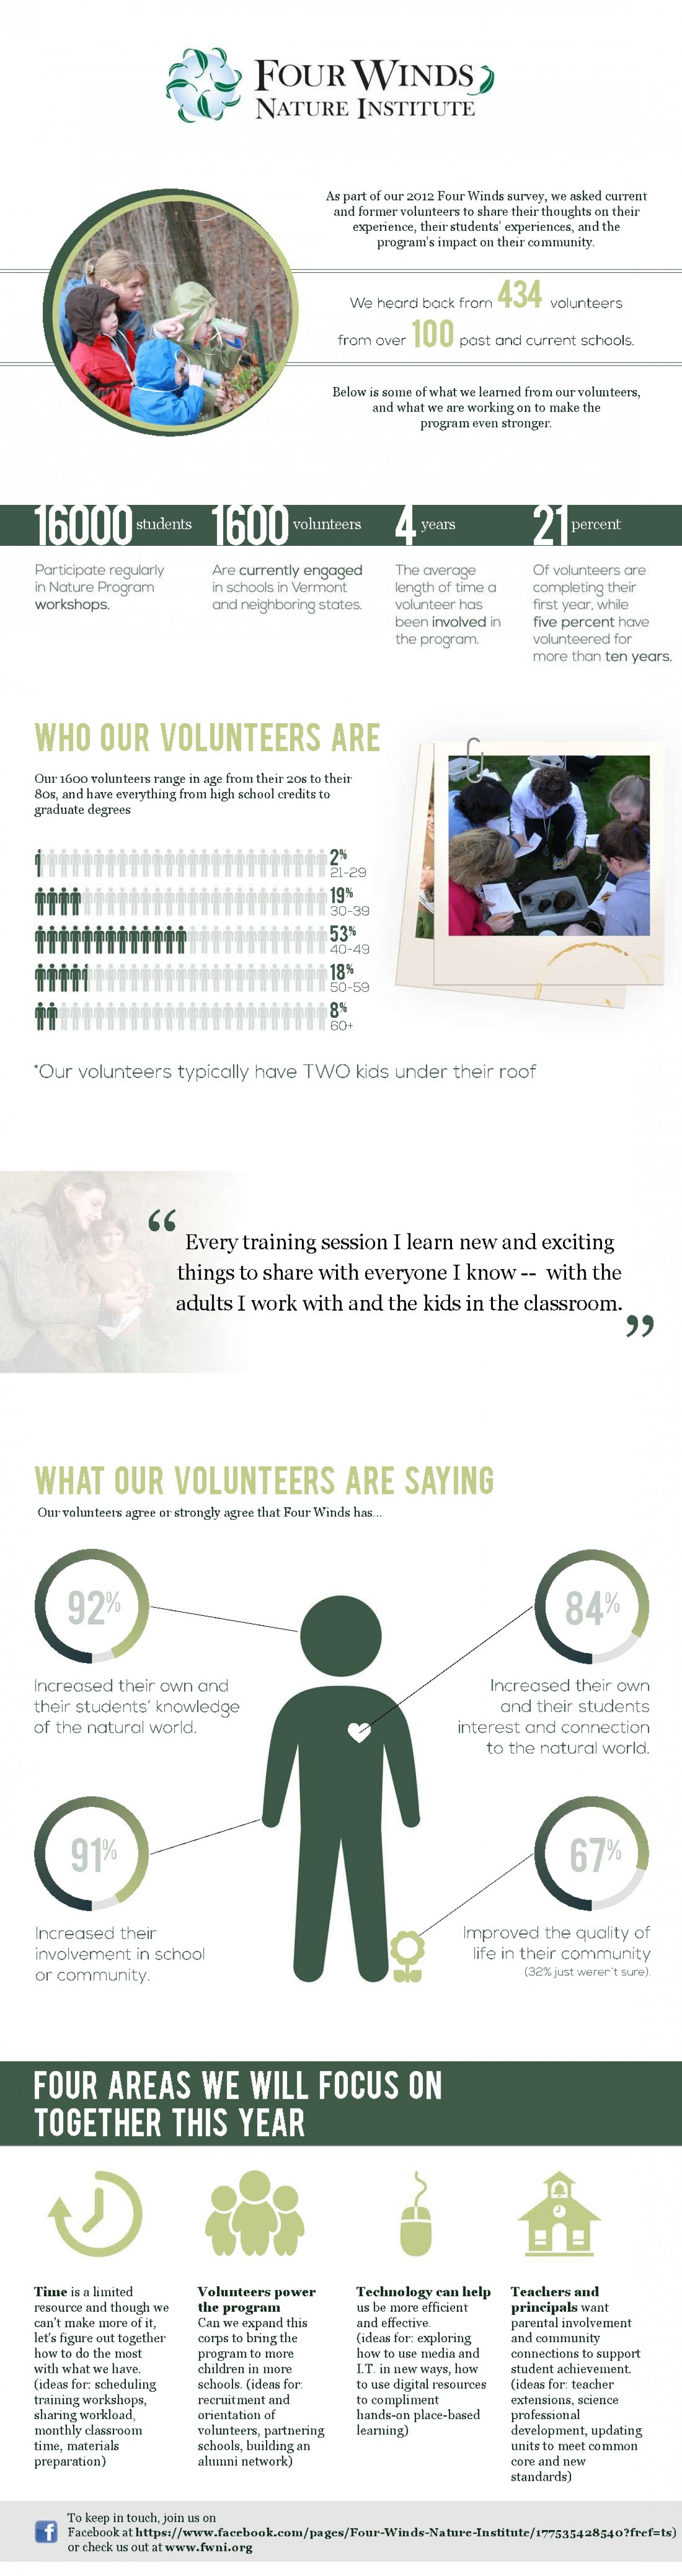 Four Winds Nature Institute Infographic